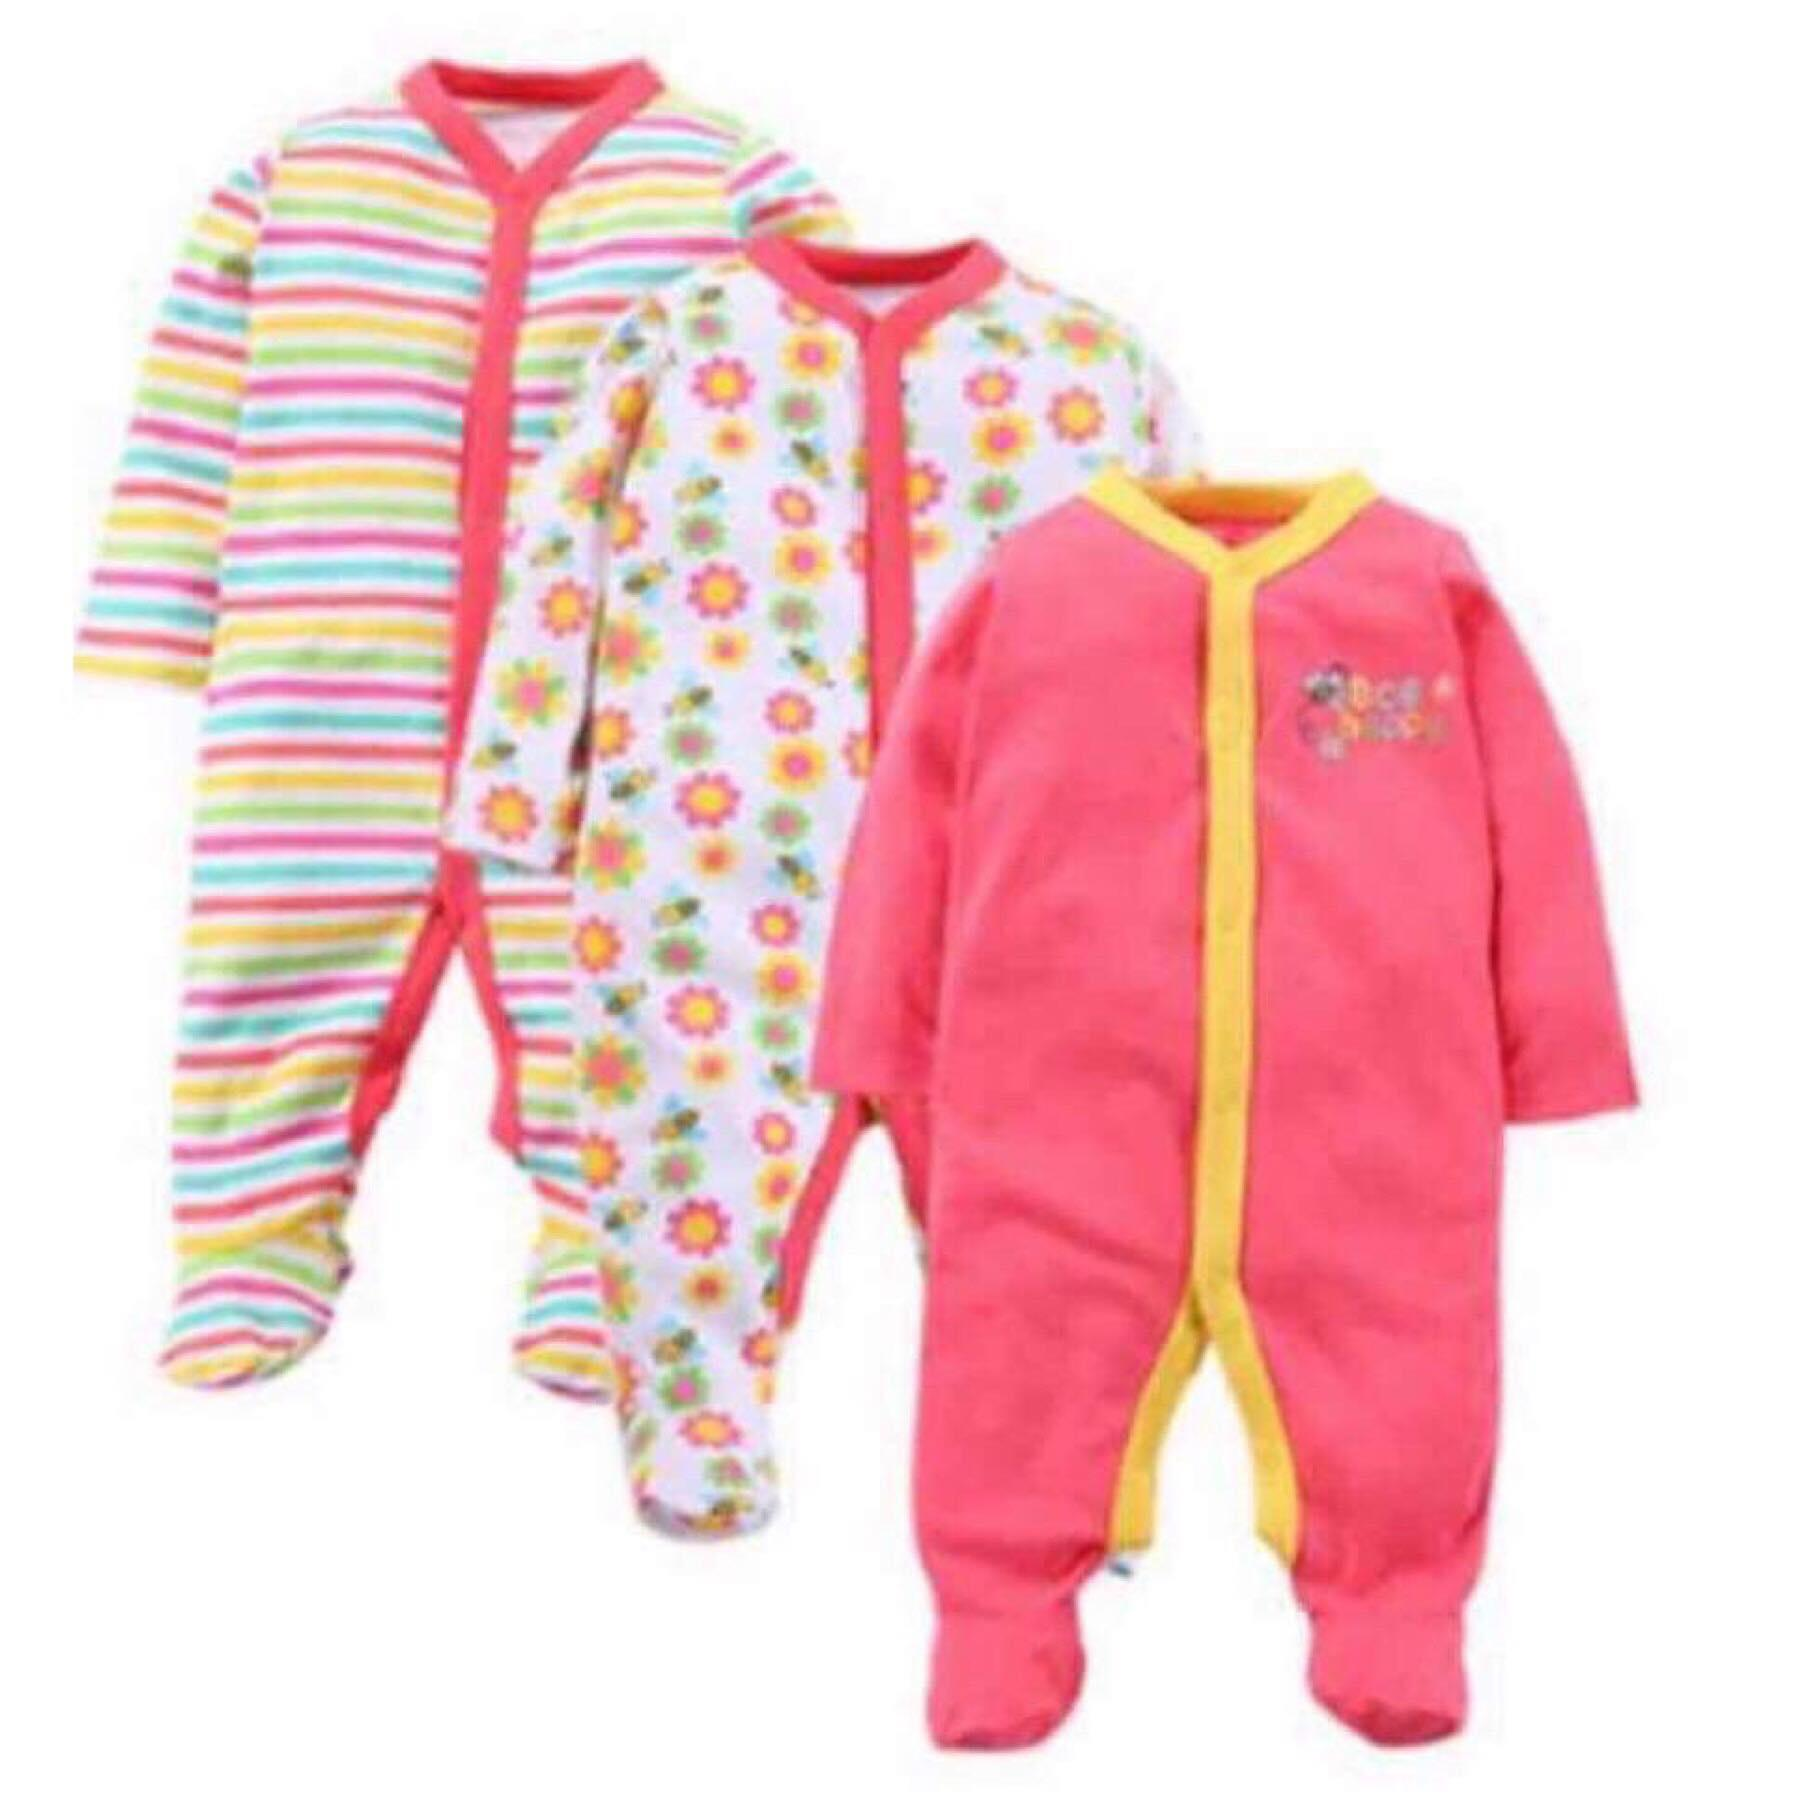 62f6bf5d5df1 Onesie for sale - Baby Onesies online brands